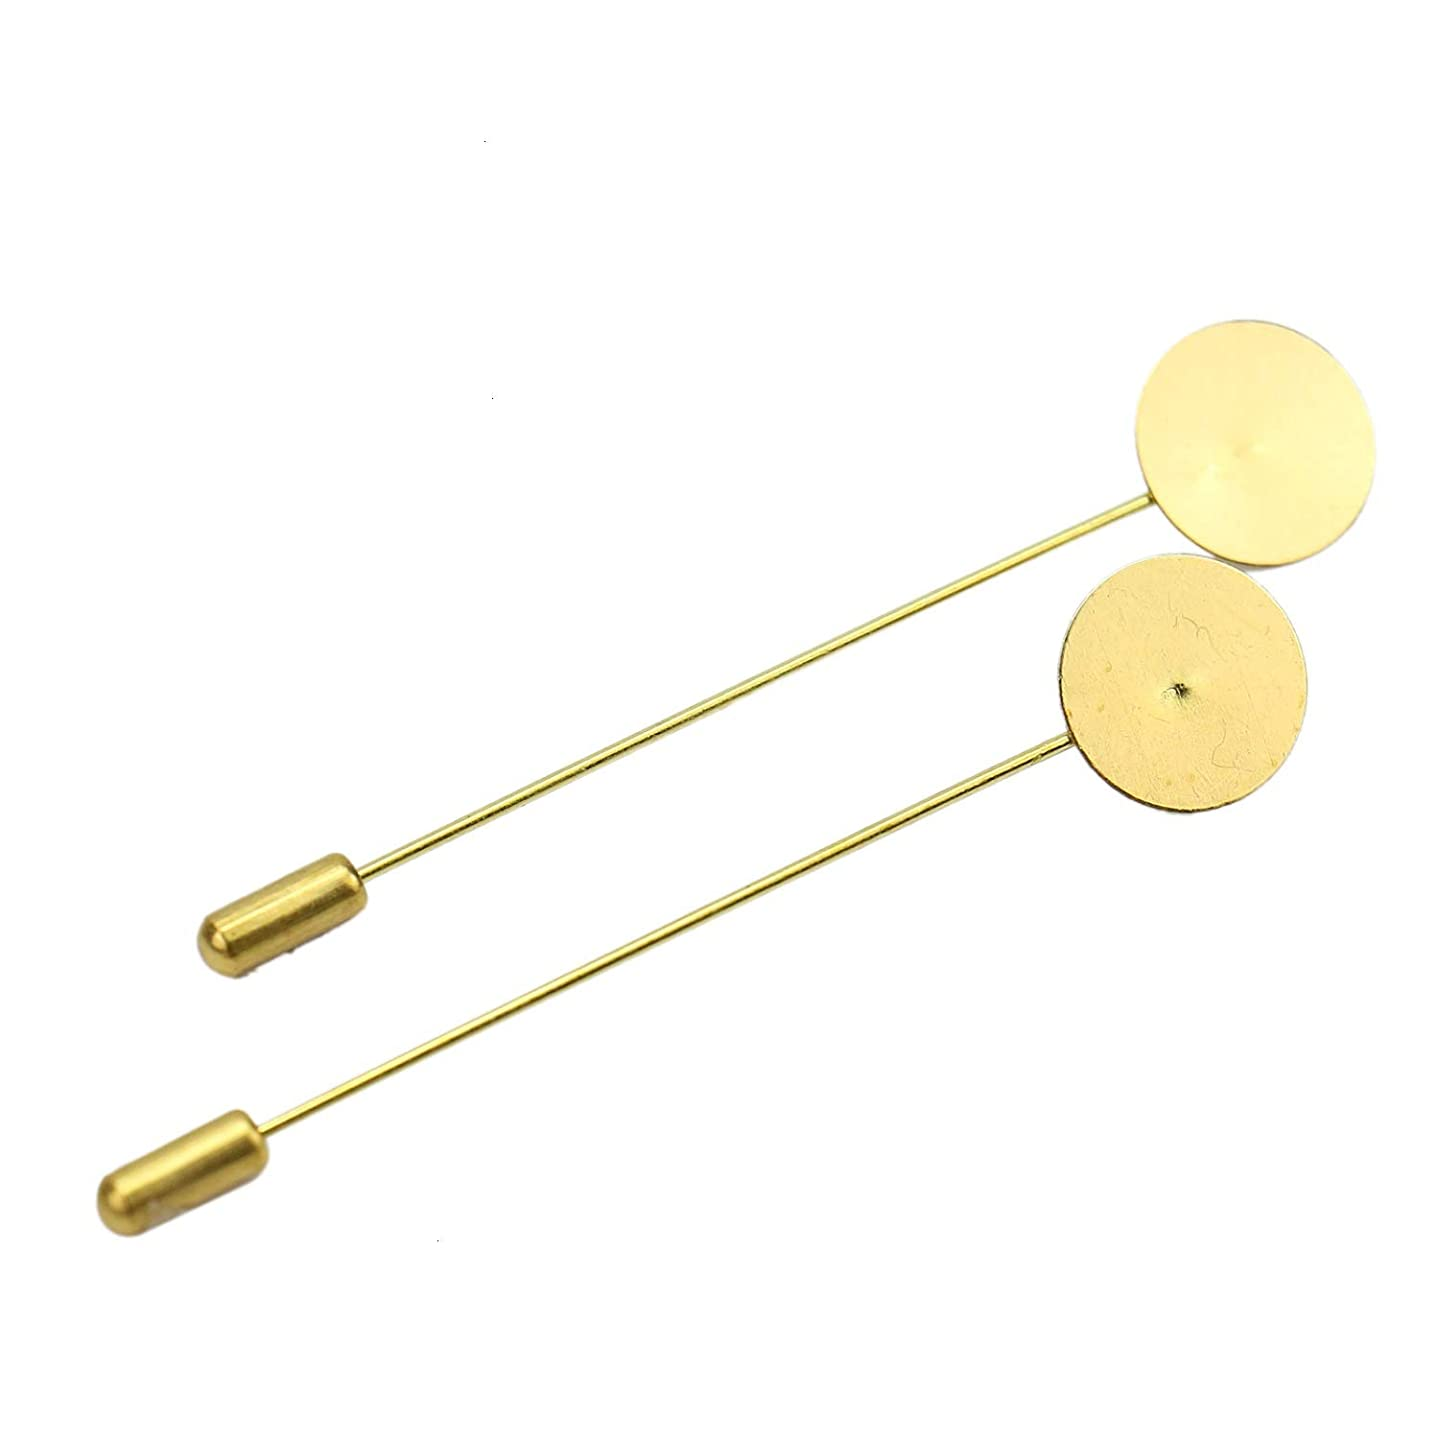 Monrocco 50 Pcs Gold Tone Round Tray Lapel Pin Safety Pins Brooches Blank Brooch Pin for Men Women Suit Tie Hat Scarf Badge DIY Jewelry Accessories